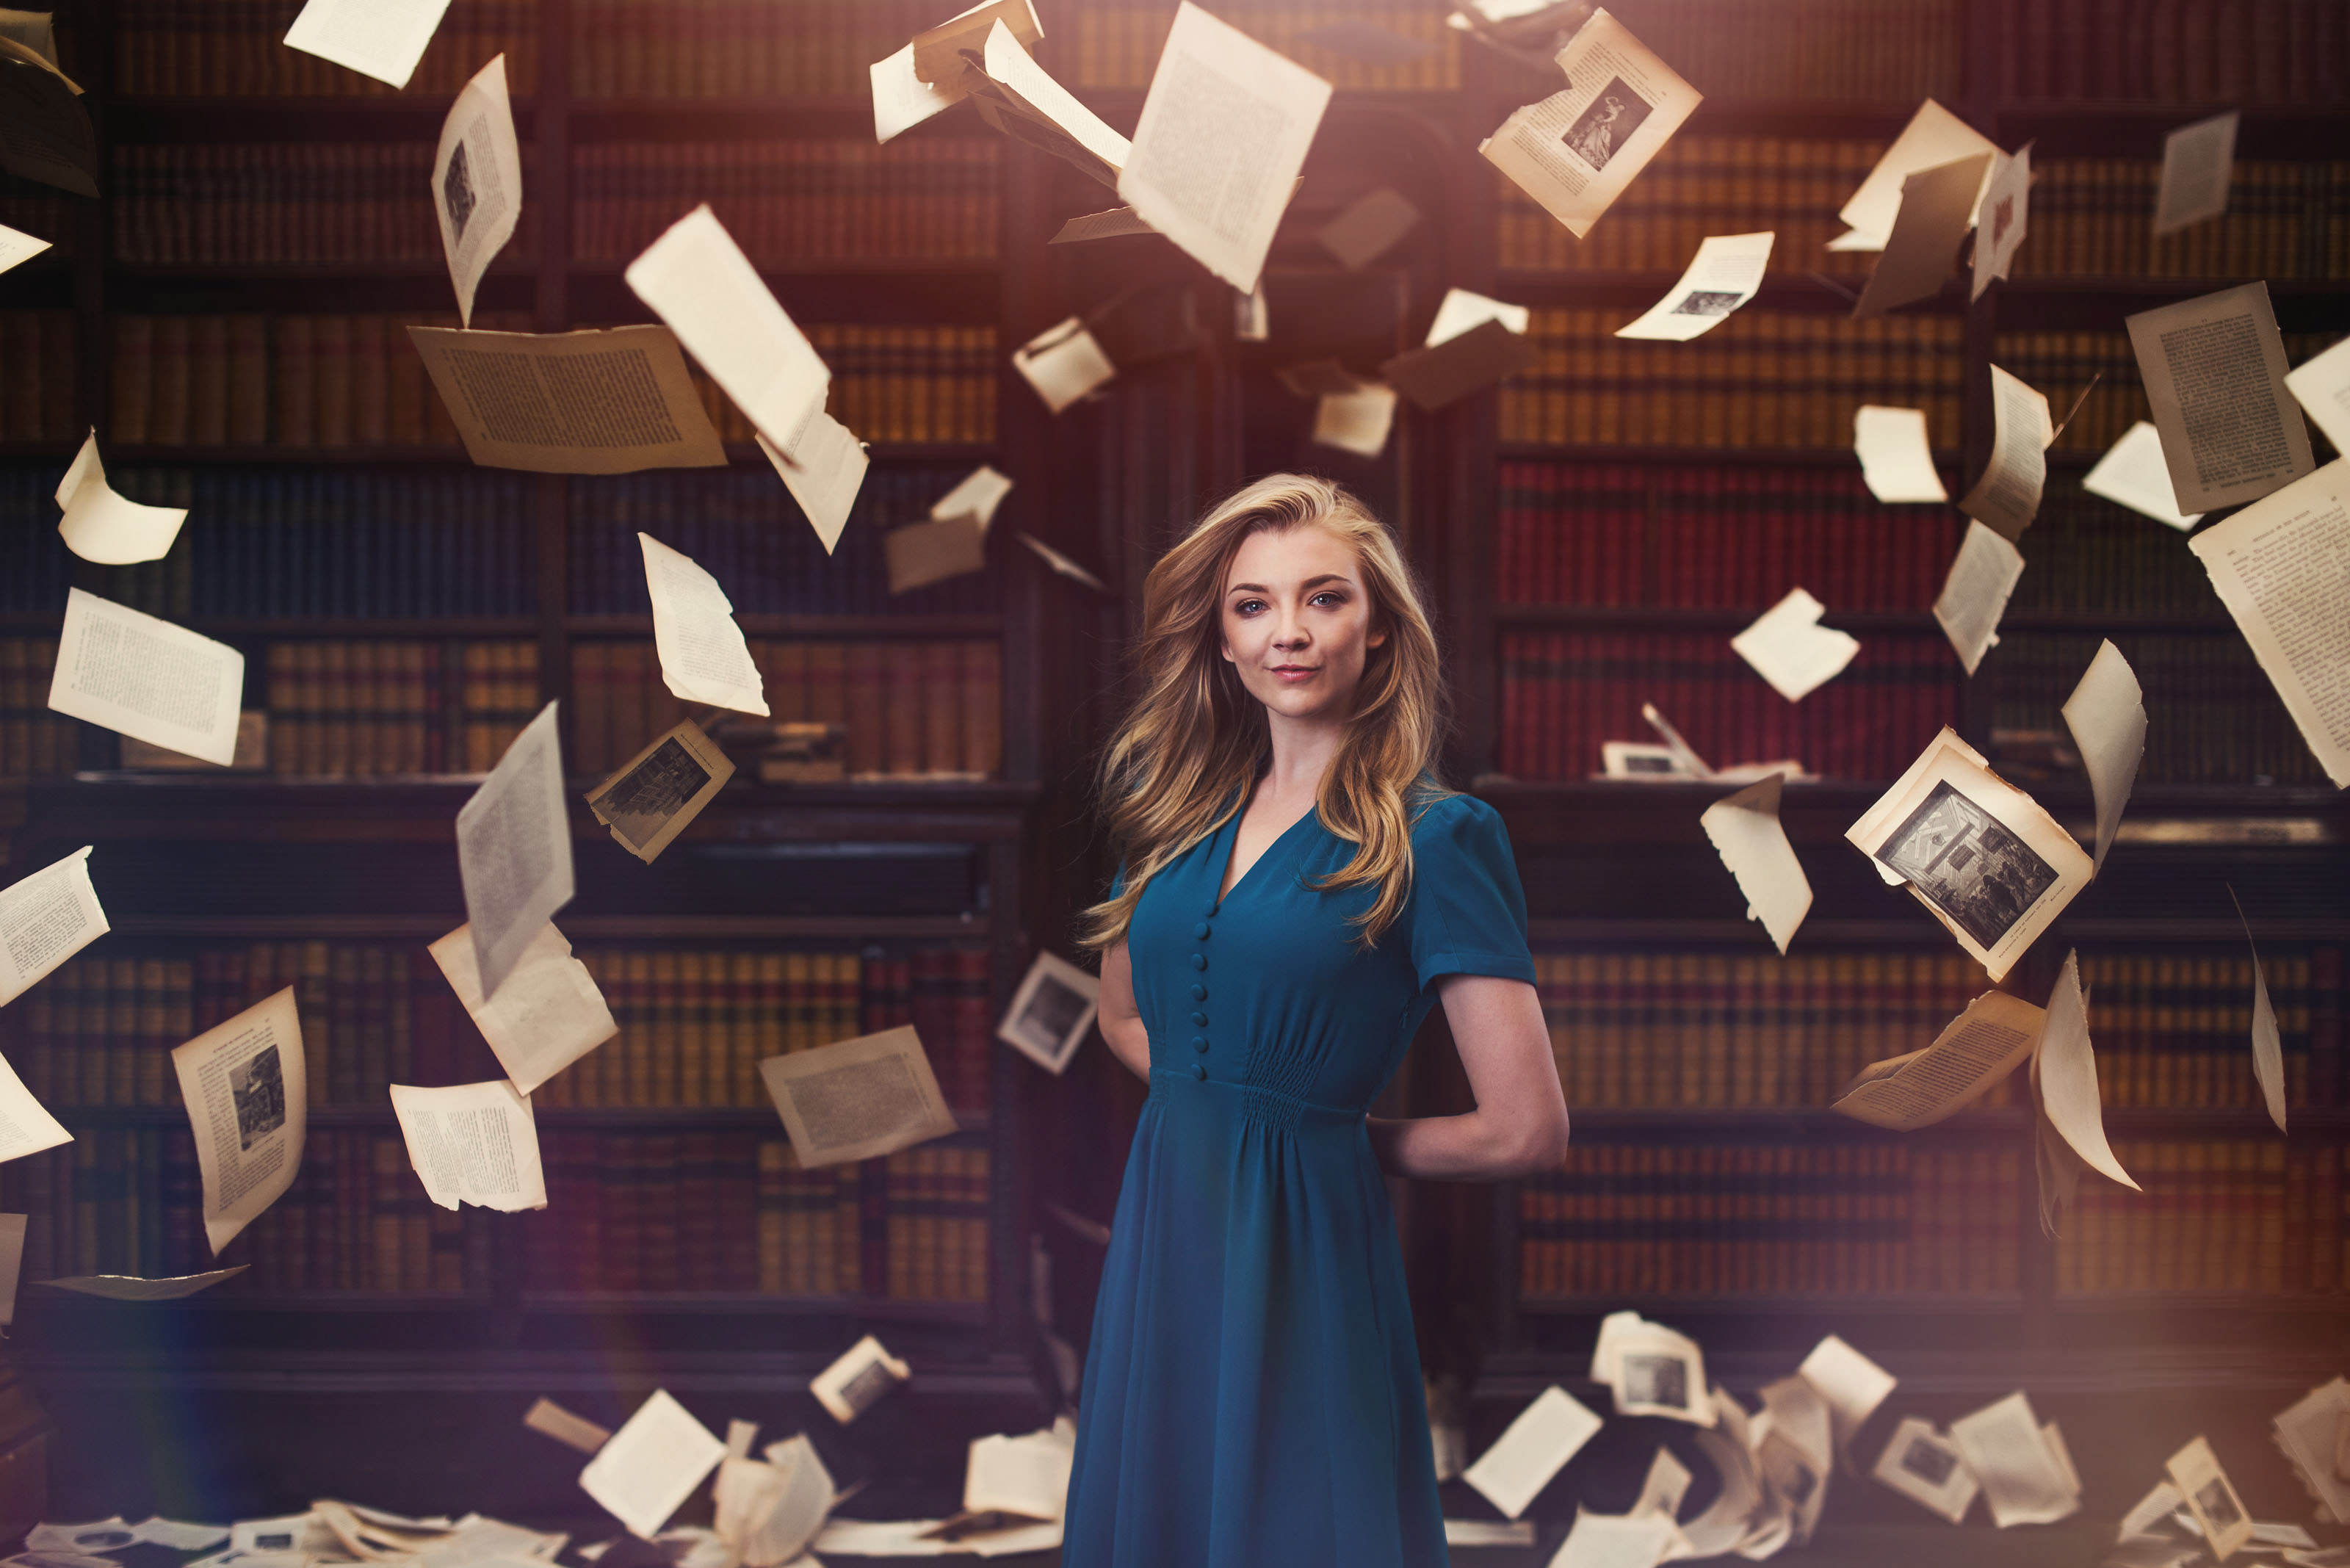 History of Magic Natalie Dormer still image - watermarked